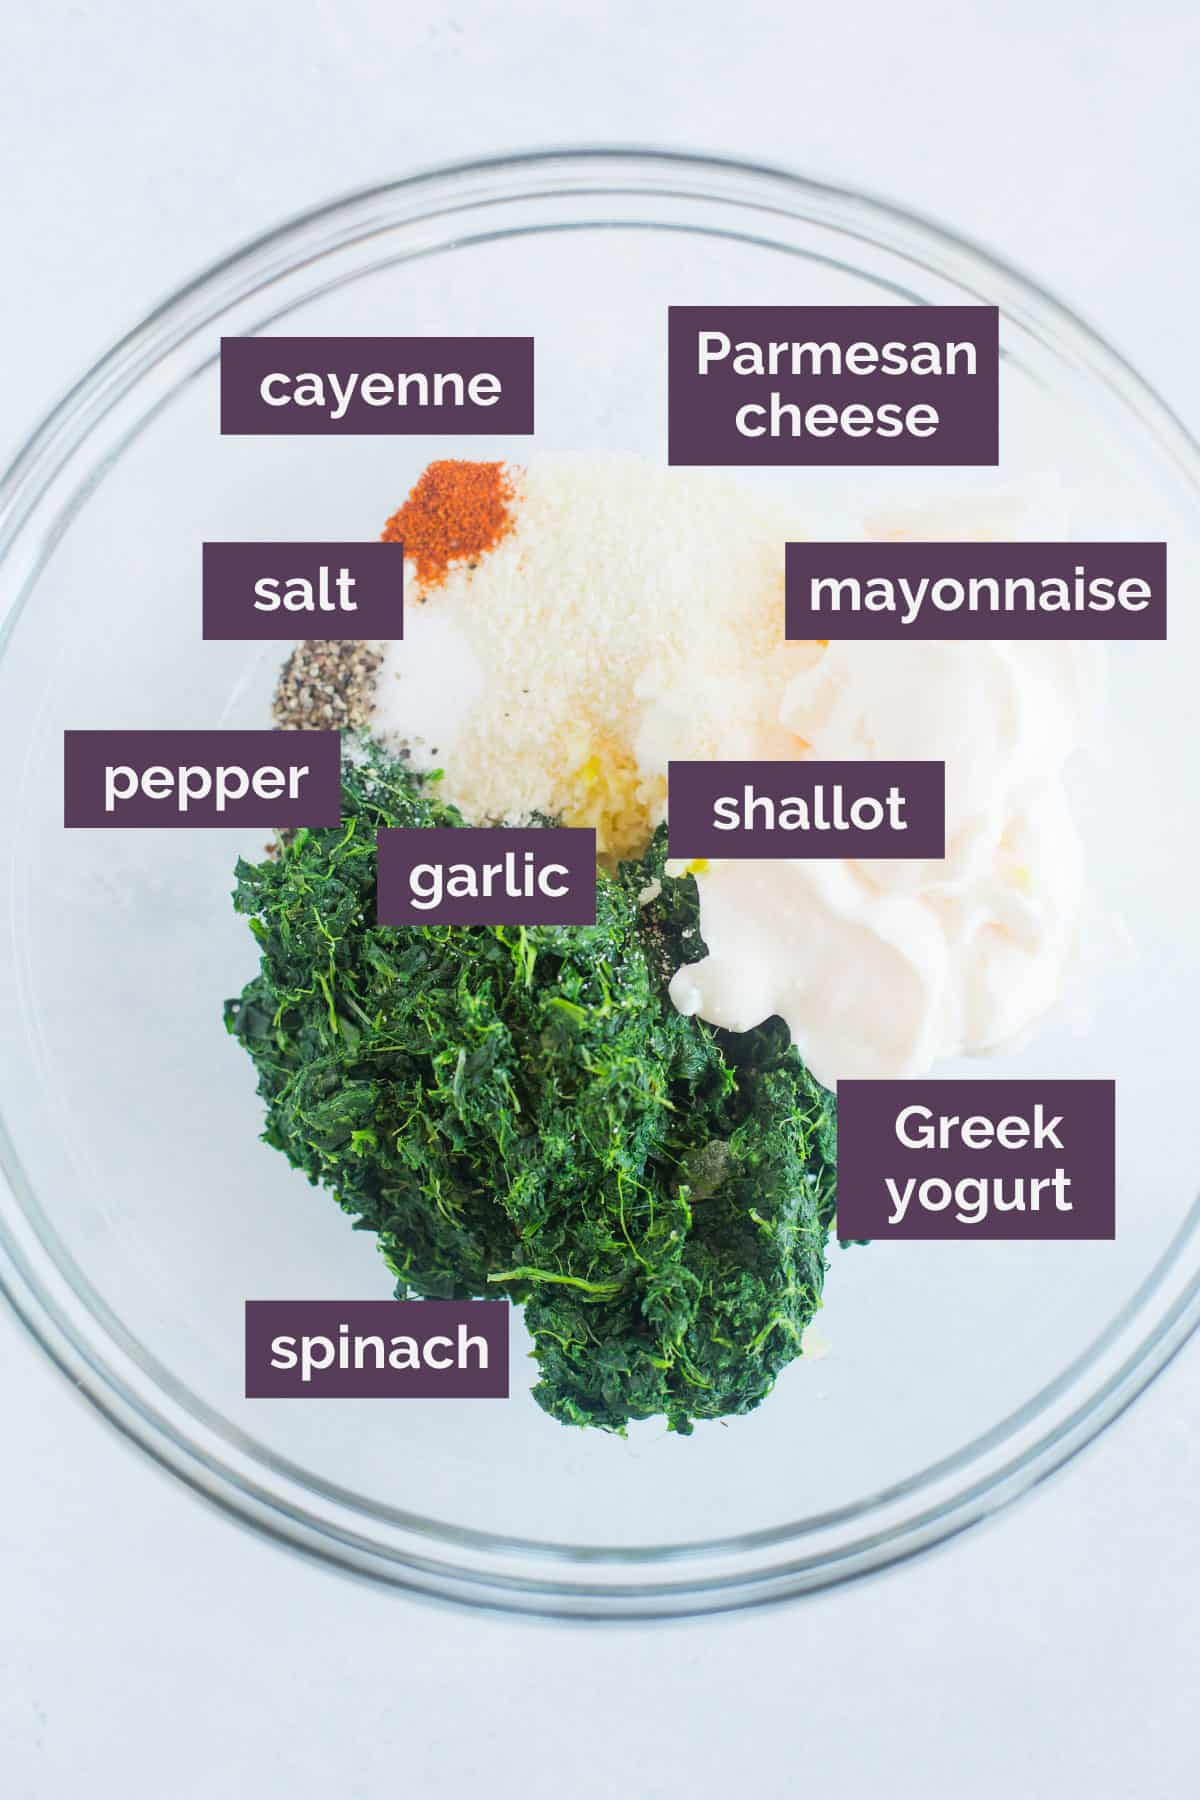 Ingredients for spinach dip in a glass bowl with purple labels naming the ingredeints.